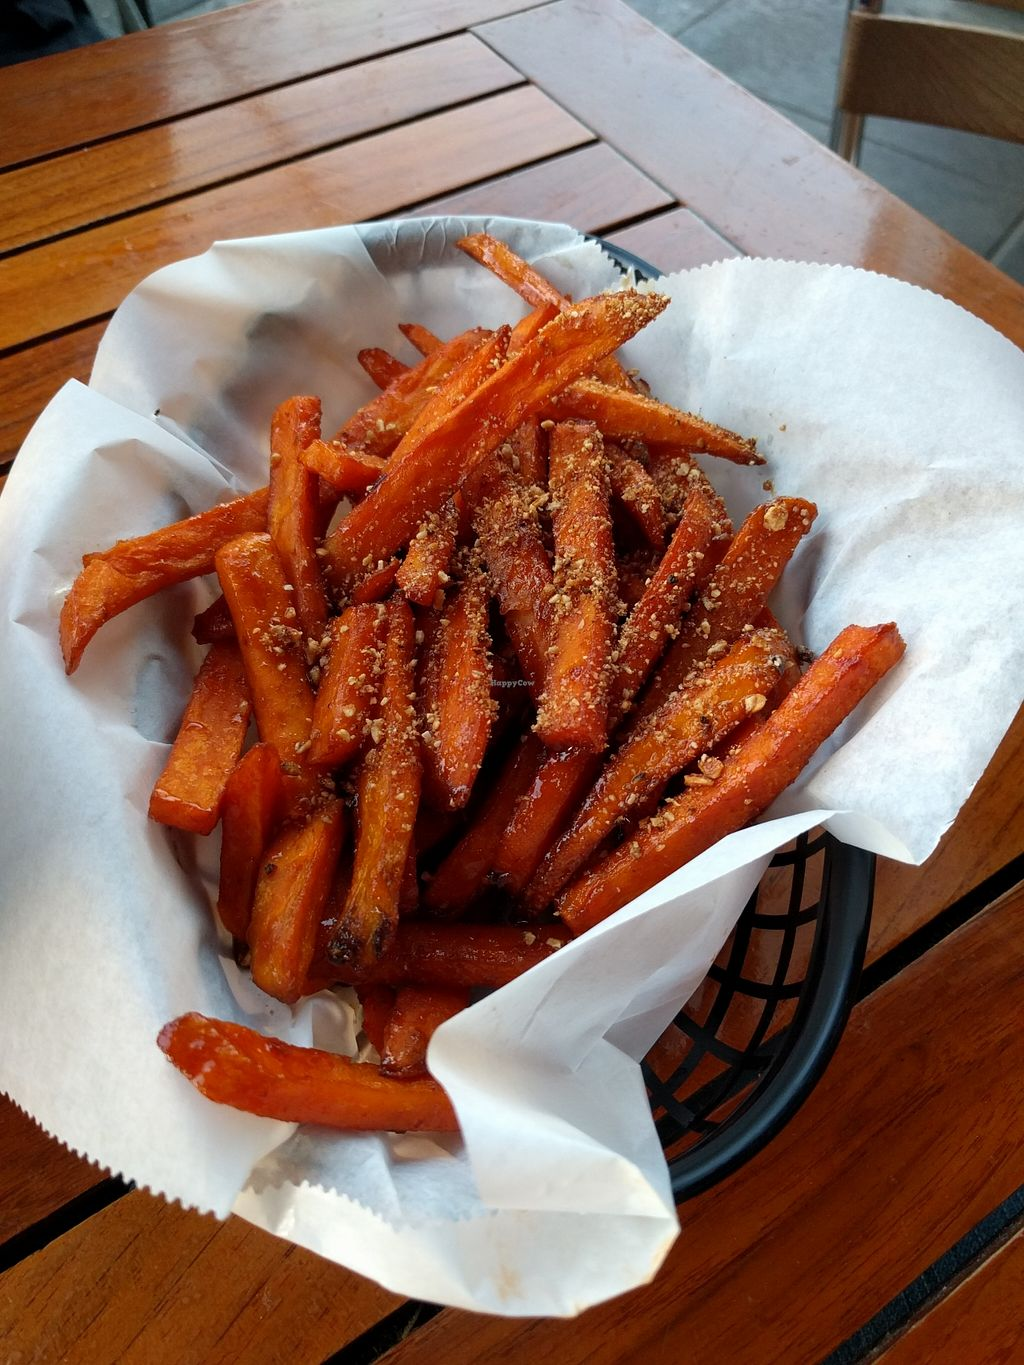 """Photo of Tony's Darts Away  by <a href=""""/members/profile/Sonja%20and%20Dirk"""">Sonja and Dirk</a> <br/>sweet and spicy campote fries <br/> March 19, 2016  - <a href='/contact/abuse/image/23159/140609'>Report</a>"""